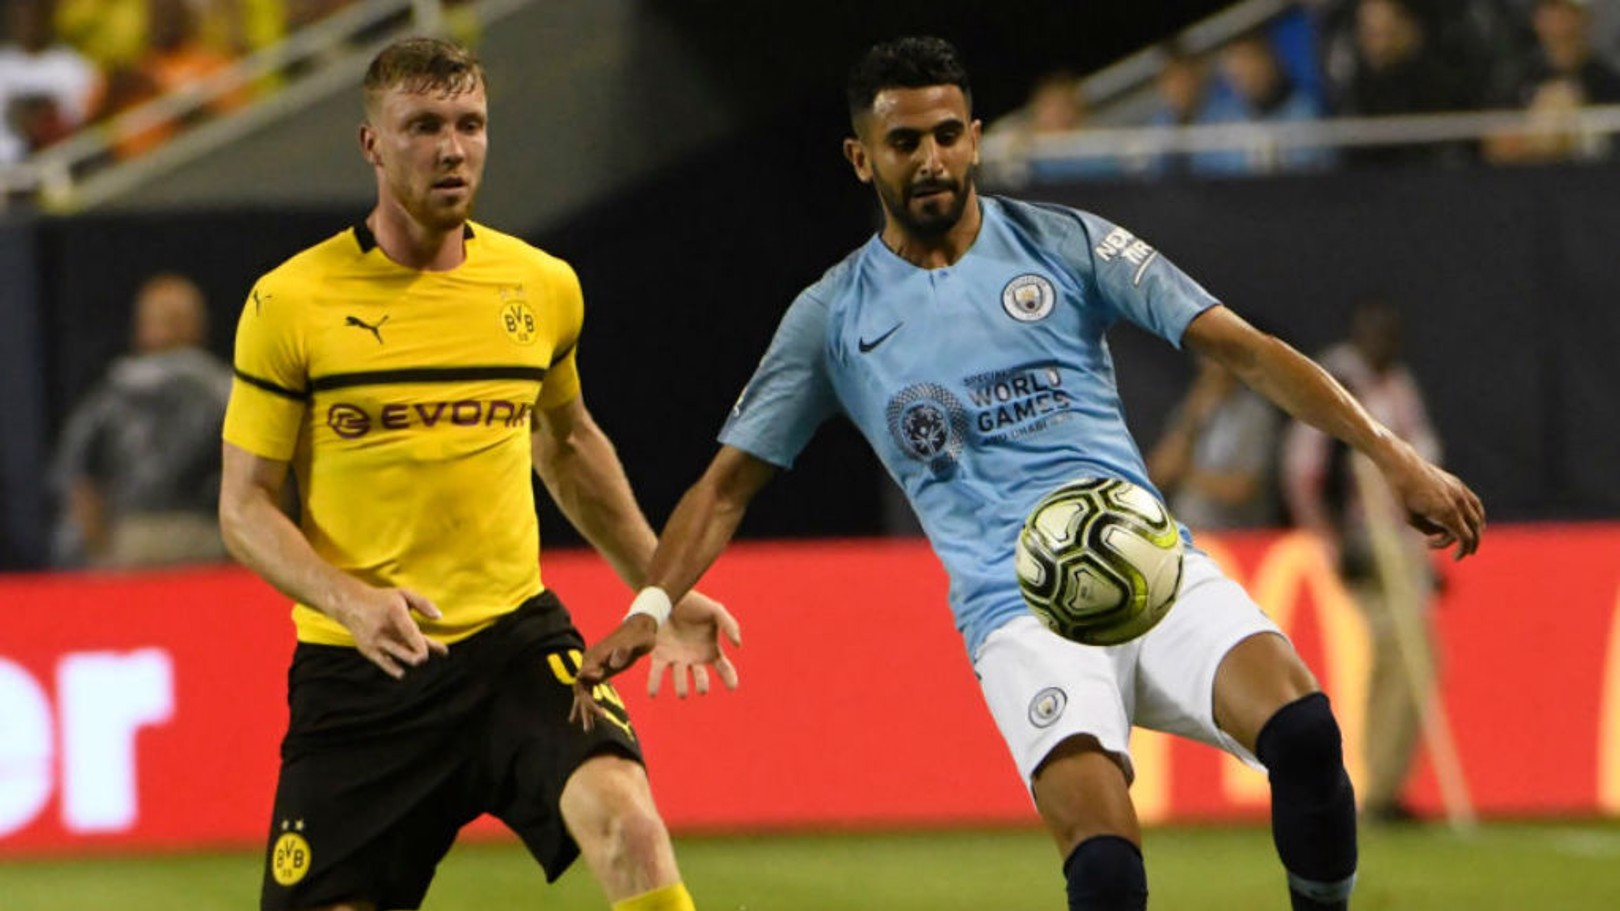 QUALITY STREET: Riyad Mahrez will offer Manchester City a host of attacking options once the 2018/19 campaign gets underway